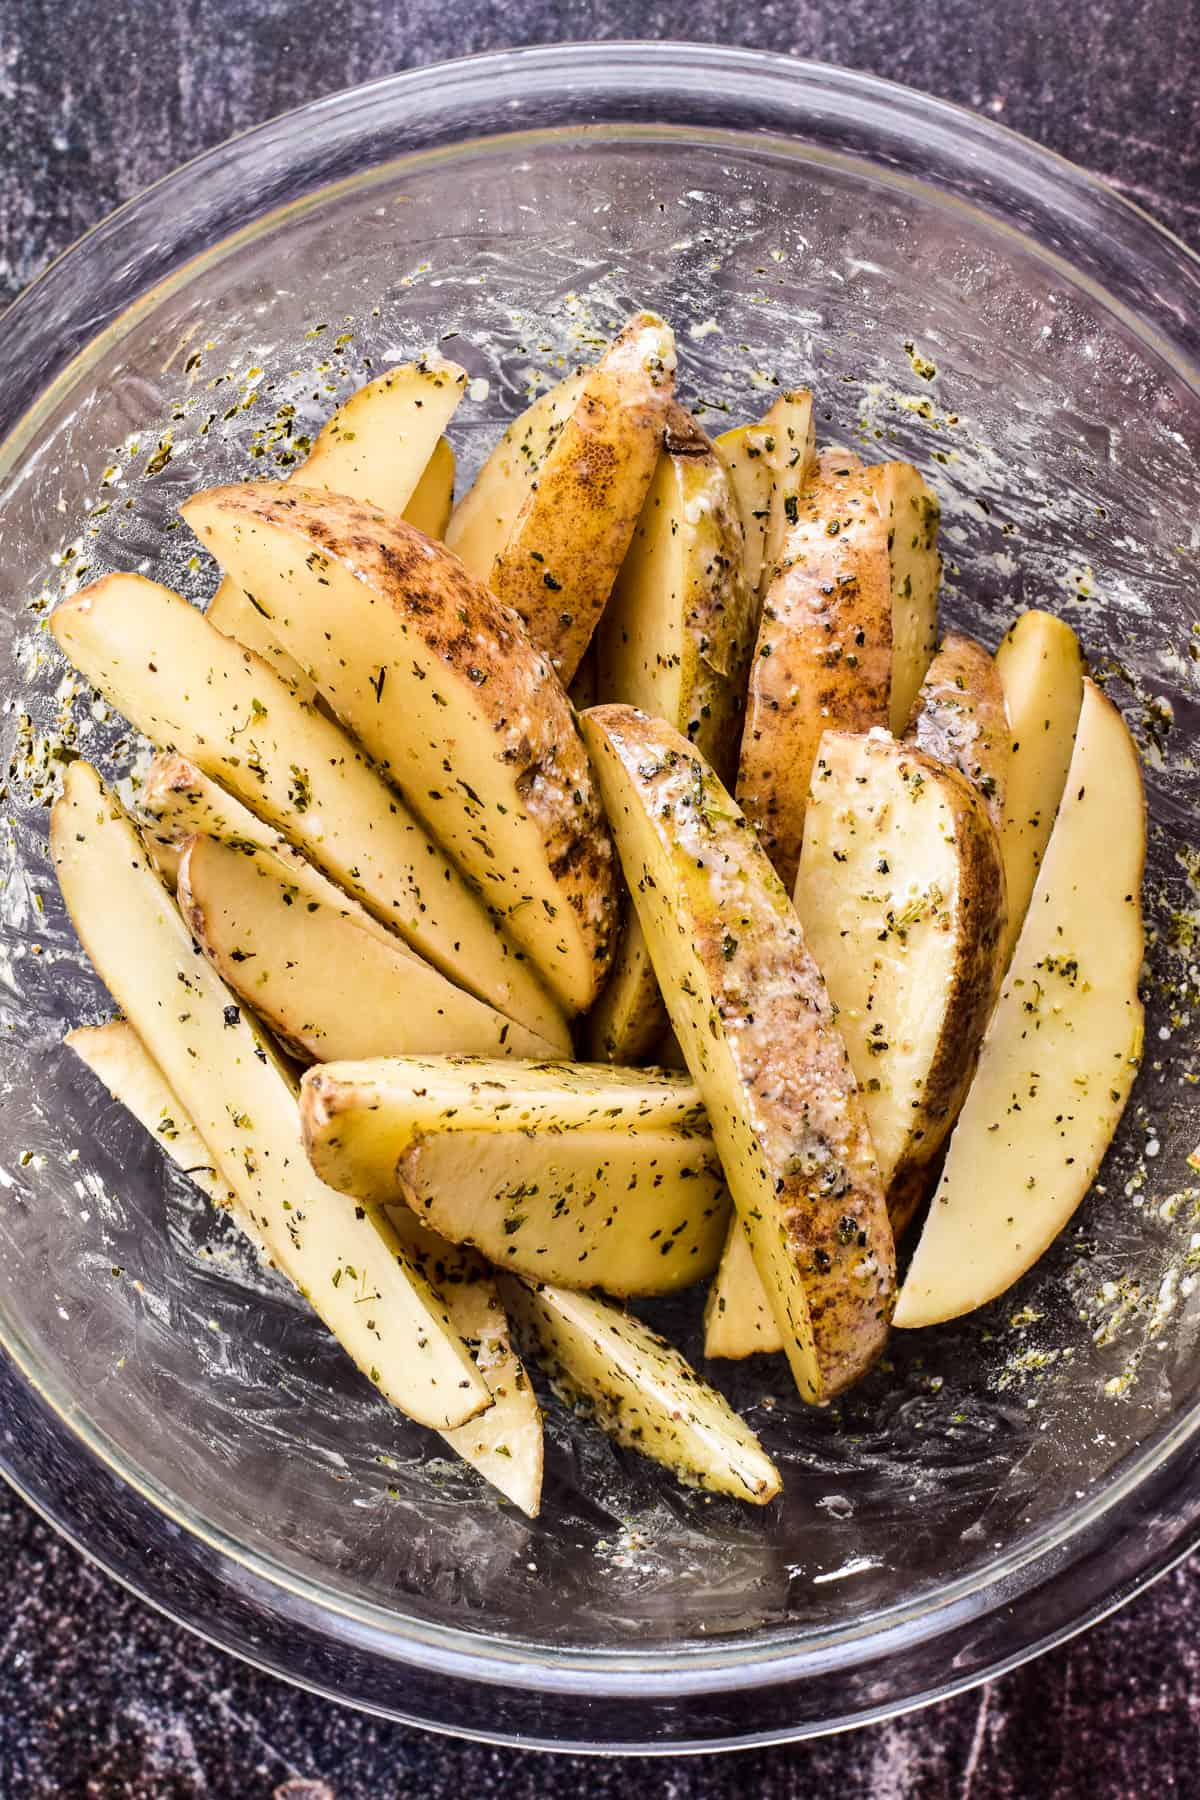 Potato Wedges combined with oil, seasonings, and cornstarch in a glass mixing bowl